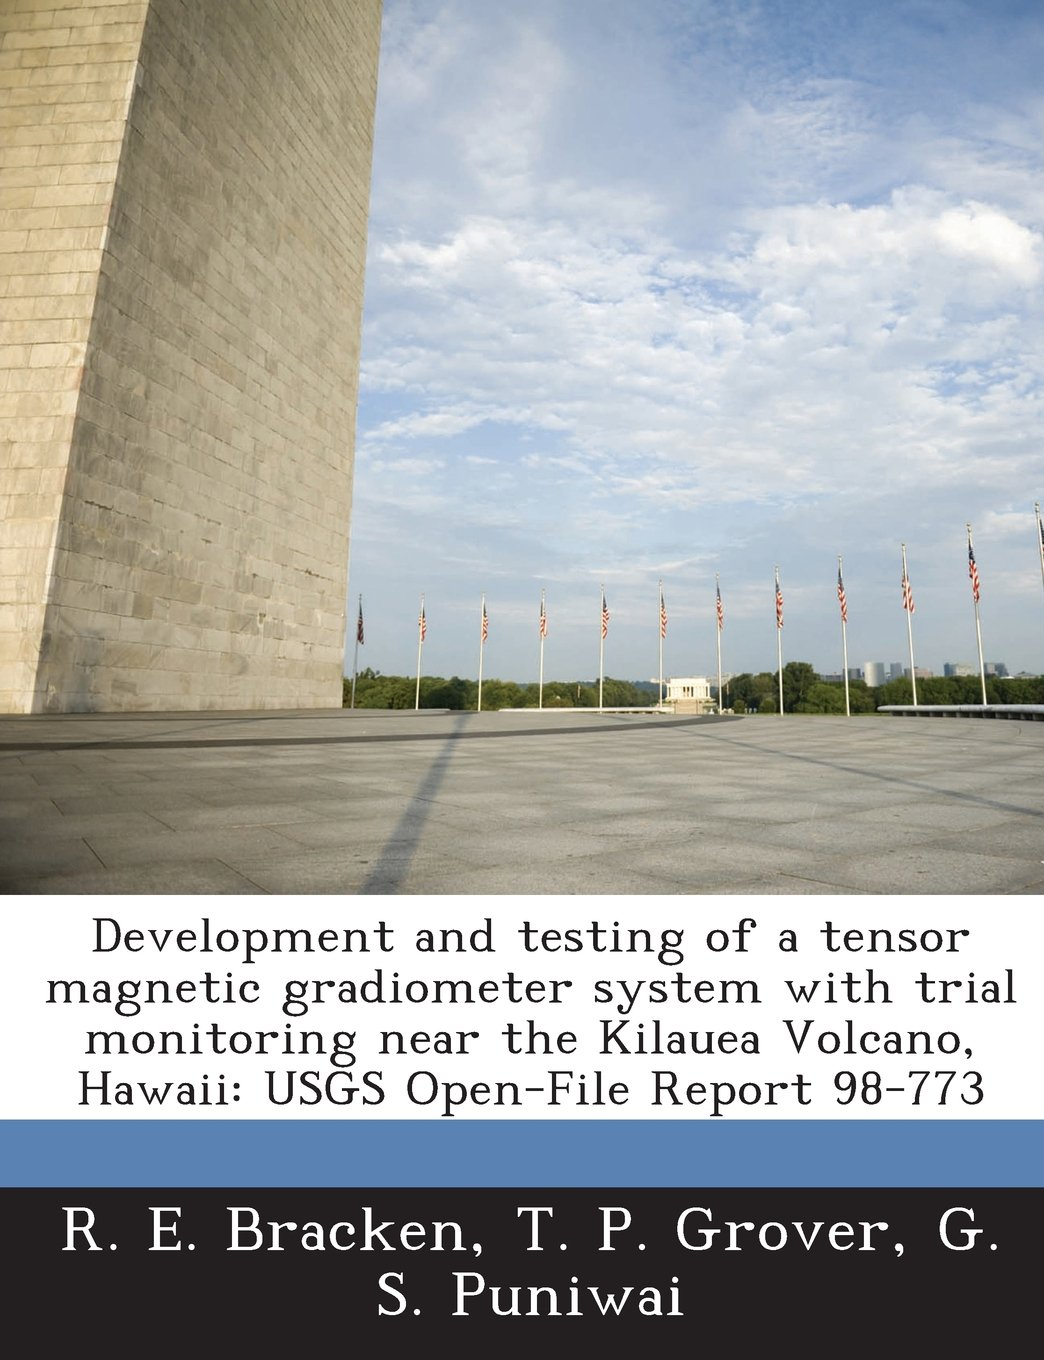 Development and testing of a tensor magnetic gradiometer system with trial monitoring near the Kilauea Volcano, Hawaii: USGS Open-File Report 98-773 pdf